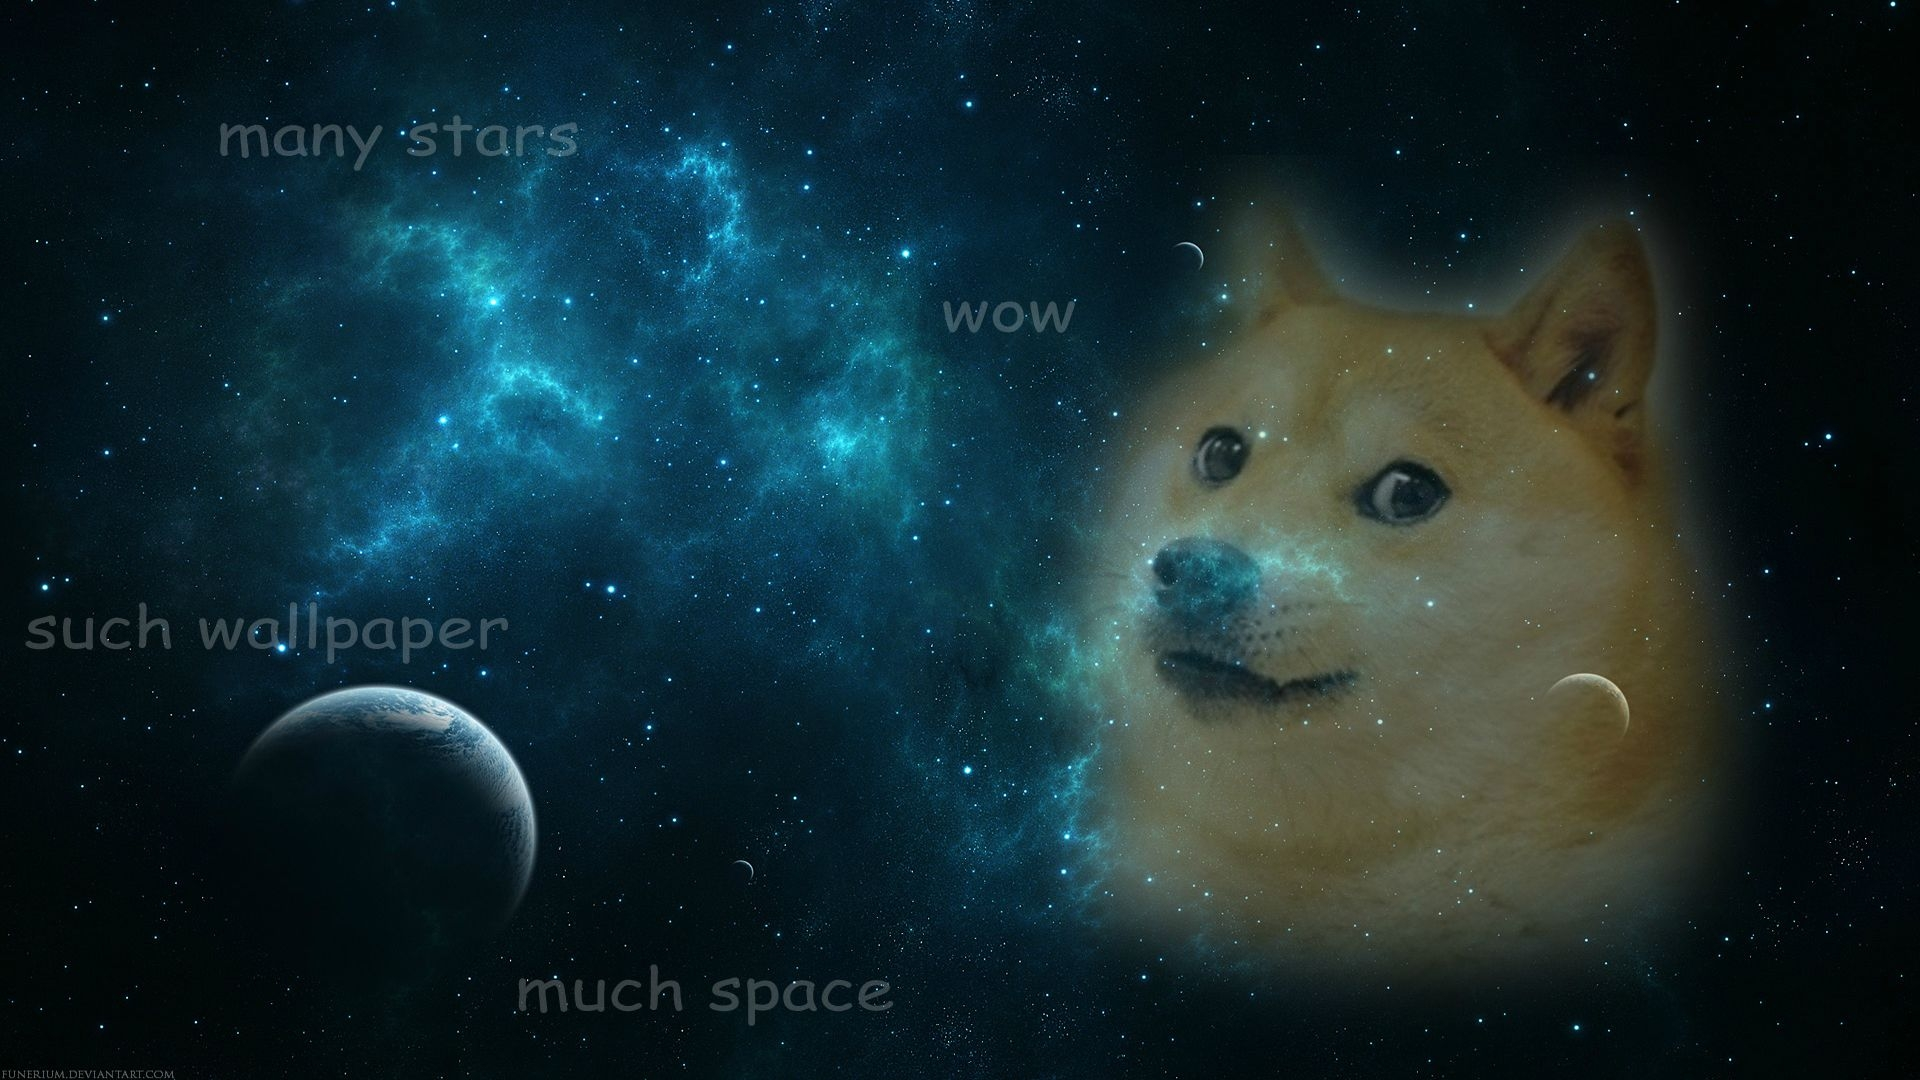 Doge in Galaxy   Doge Wallpaper 1920x1080 46174 1920x1080